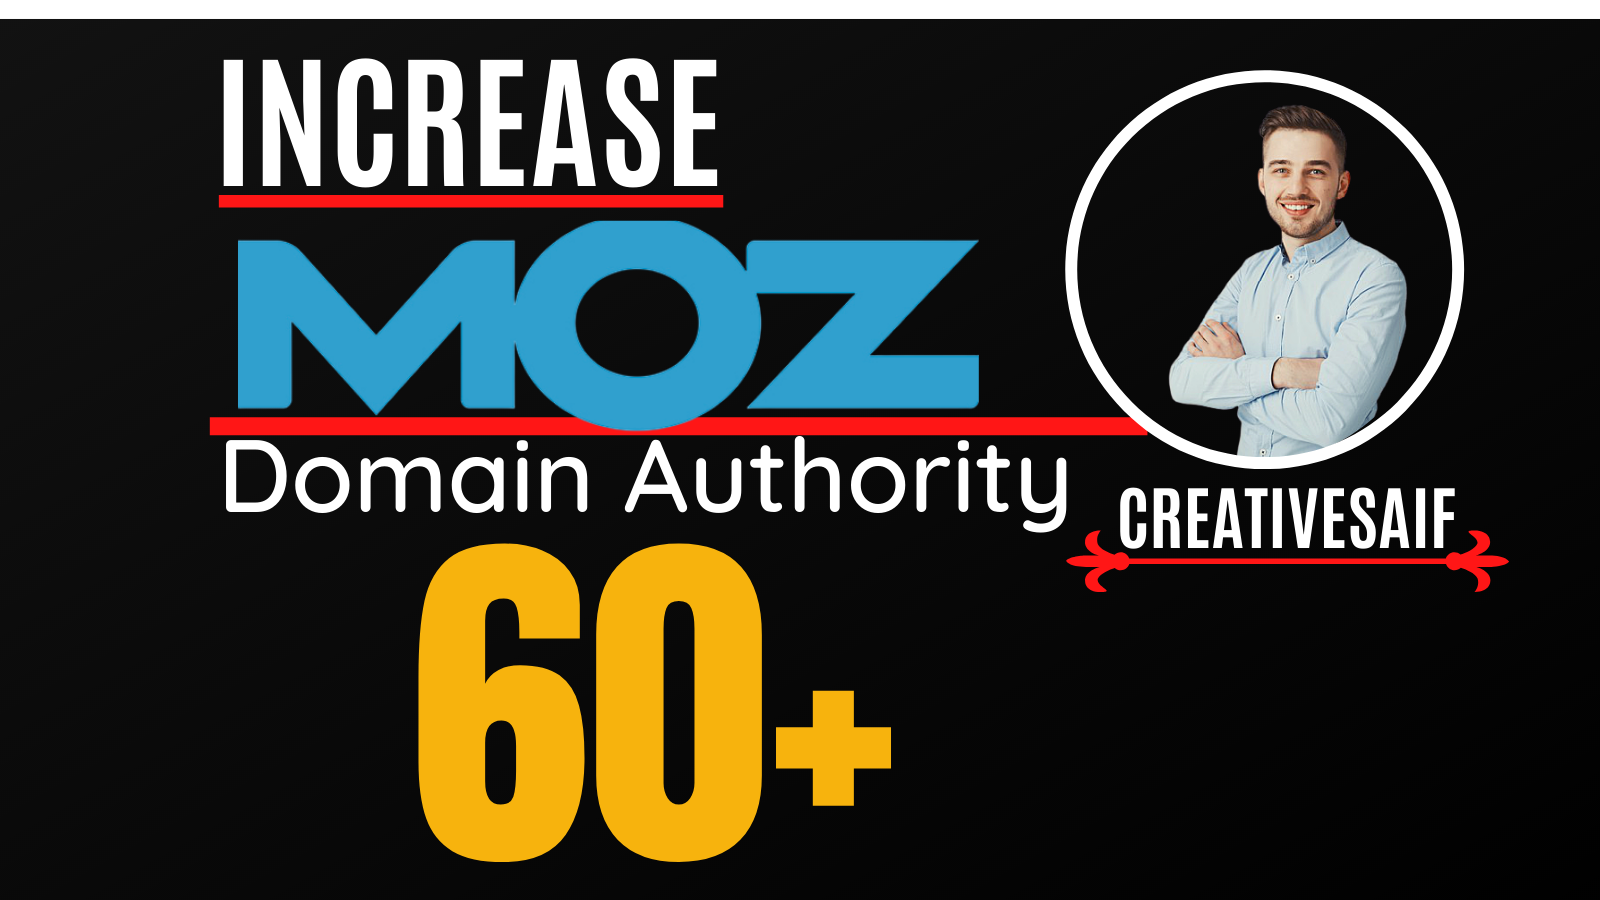 I will increase moz domain authority, increase moz da 0 to 60 plus